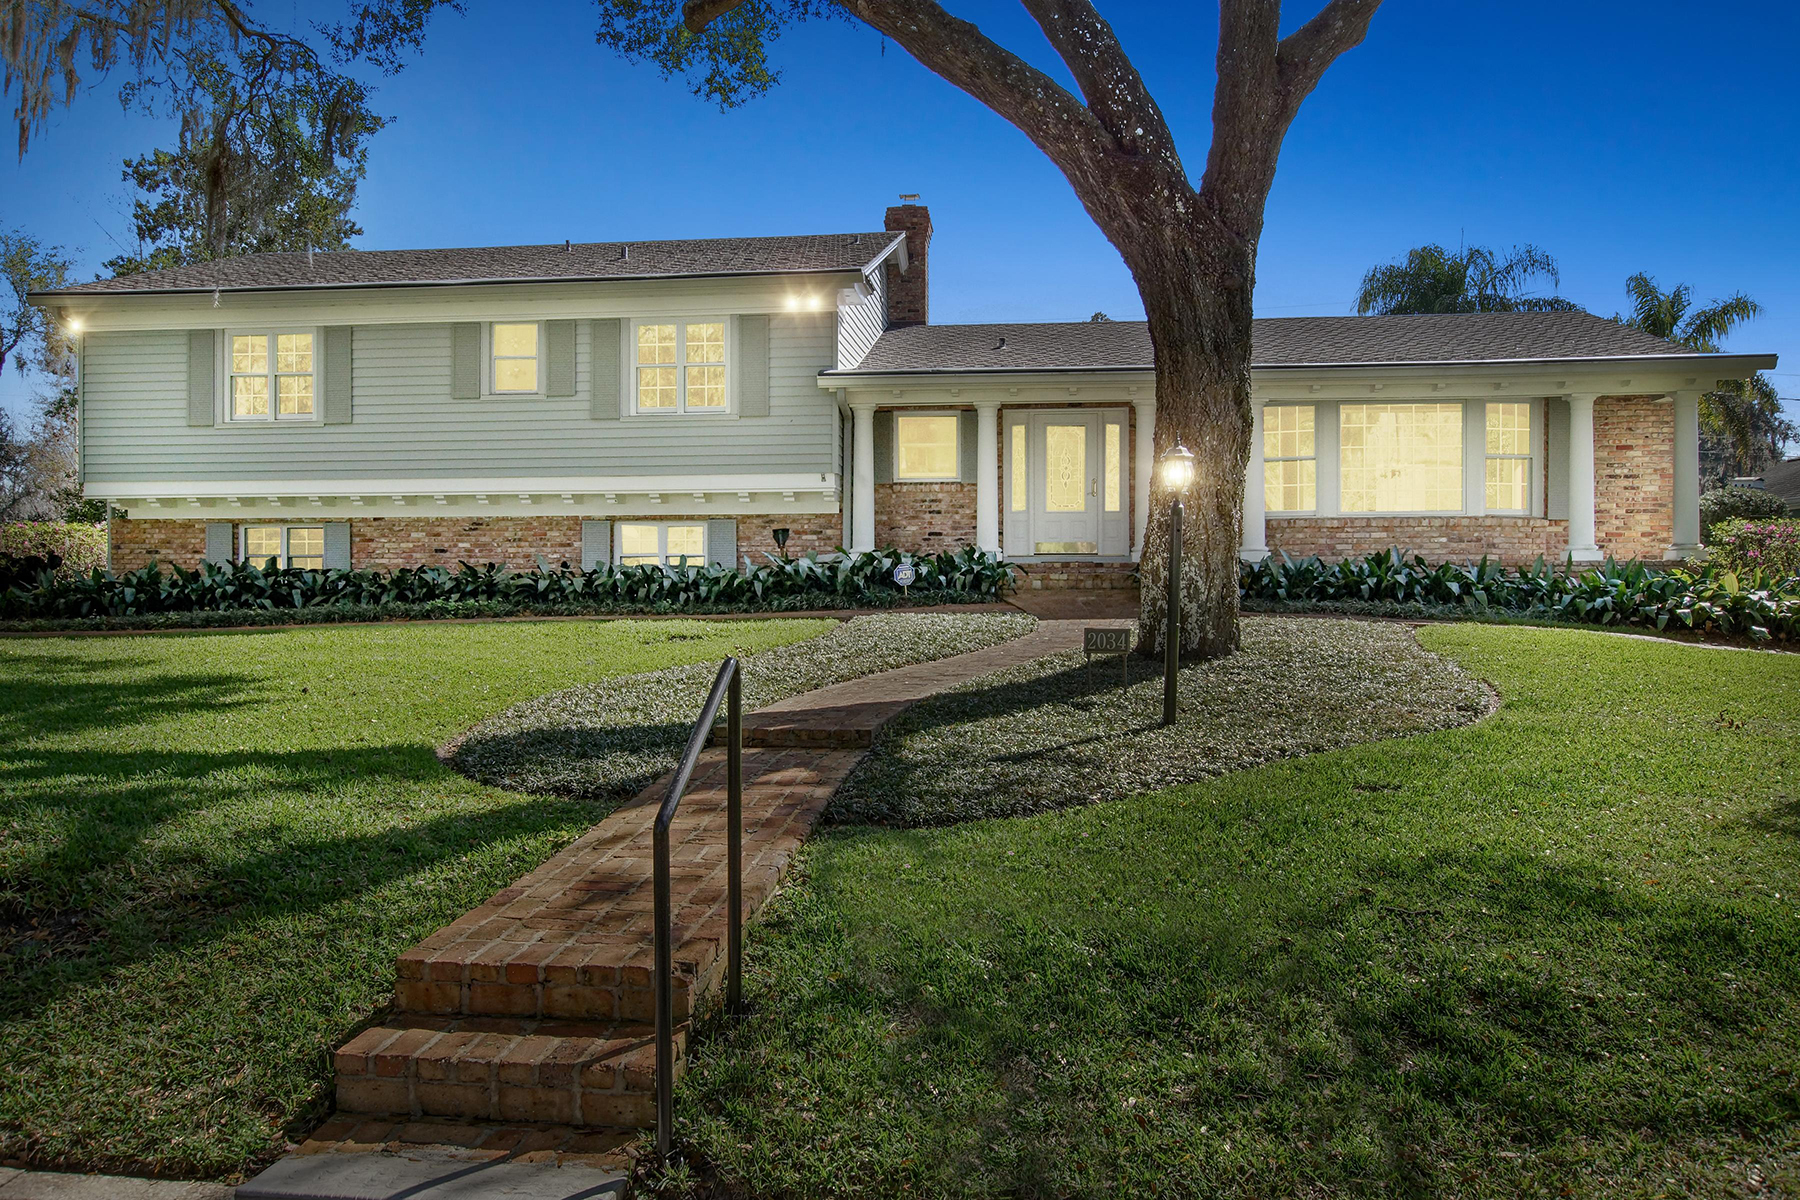 Single Family Home for Sale at ORLANDO - WINTER PARK 2034 Cove Trl Winter Park, Florida, 32789 United States